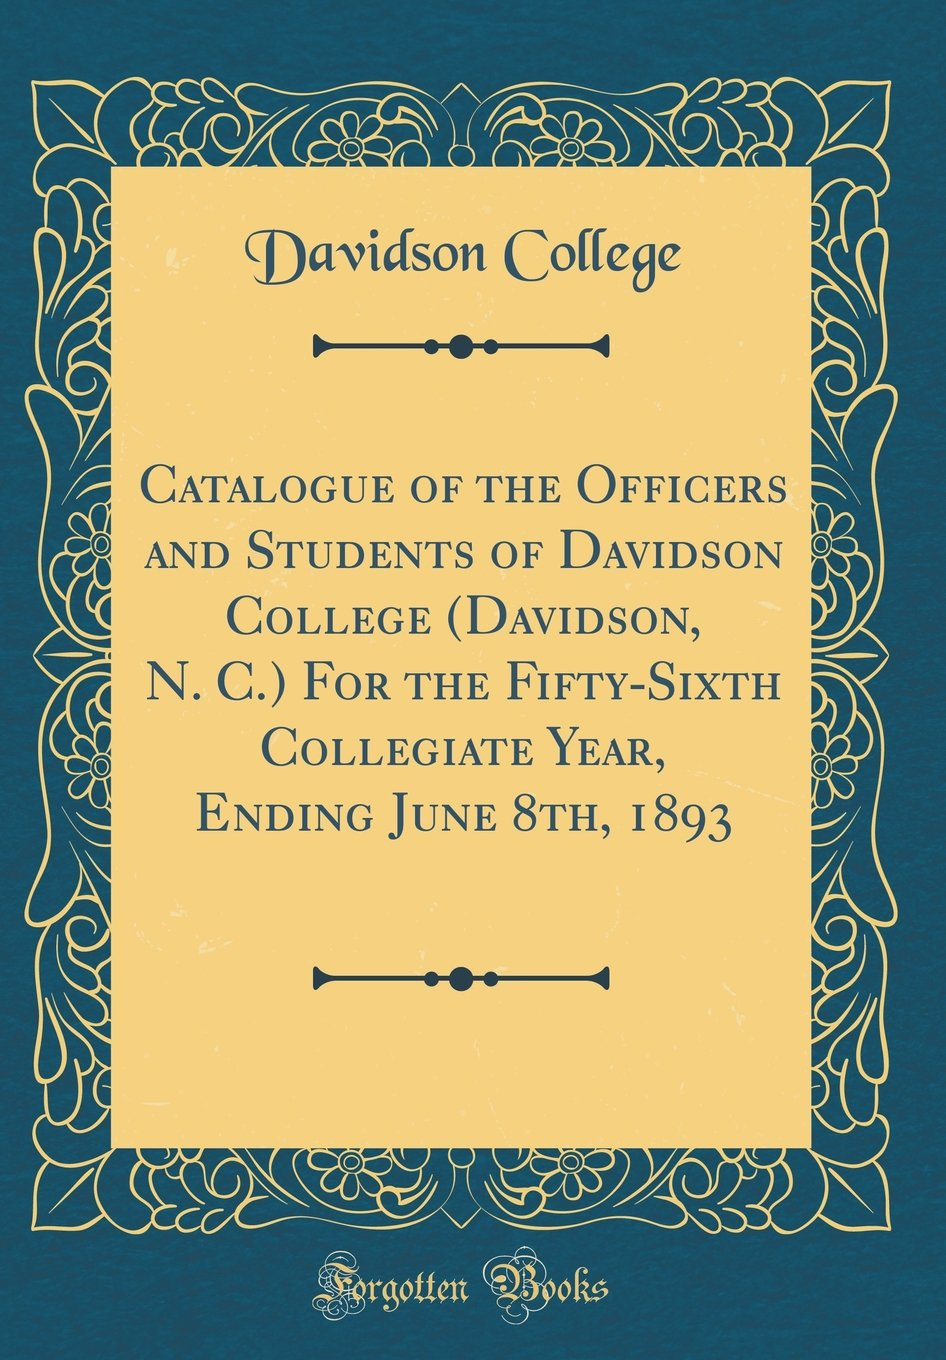 Download Catalogue of the Officers and Students of Davidson College (Davidson, N. C.) for the Fifty-Sixth Collegiate Year, Ending June 8th, 1893 (Classic Reprint) pdf epub